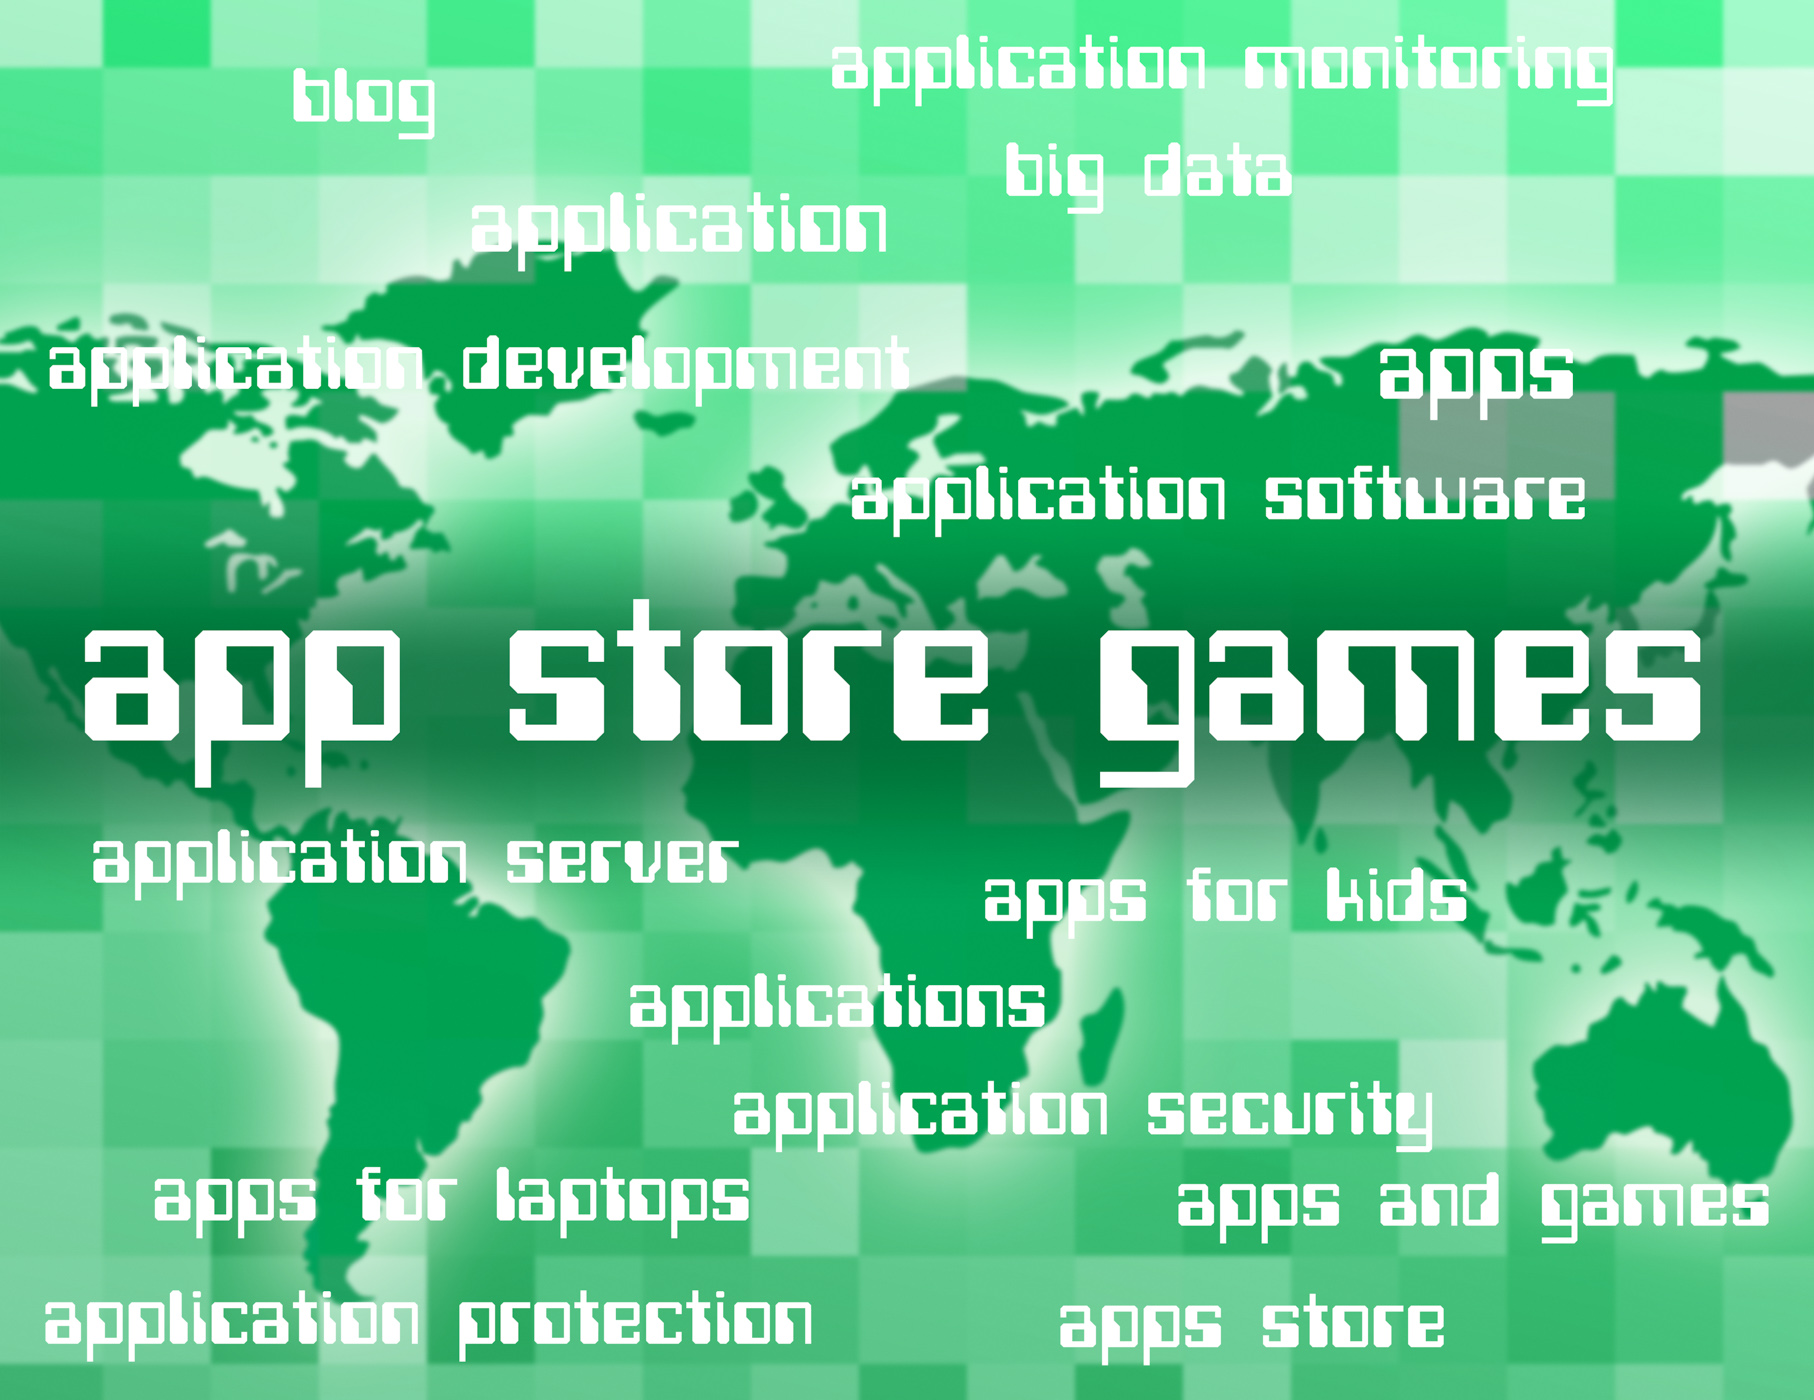 Free Photo App Store Games Shows Retail Sales And Applications App Shop Recreation Free Download Jooinn